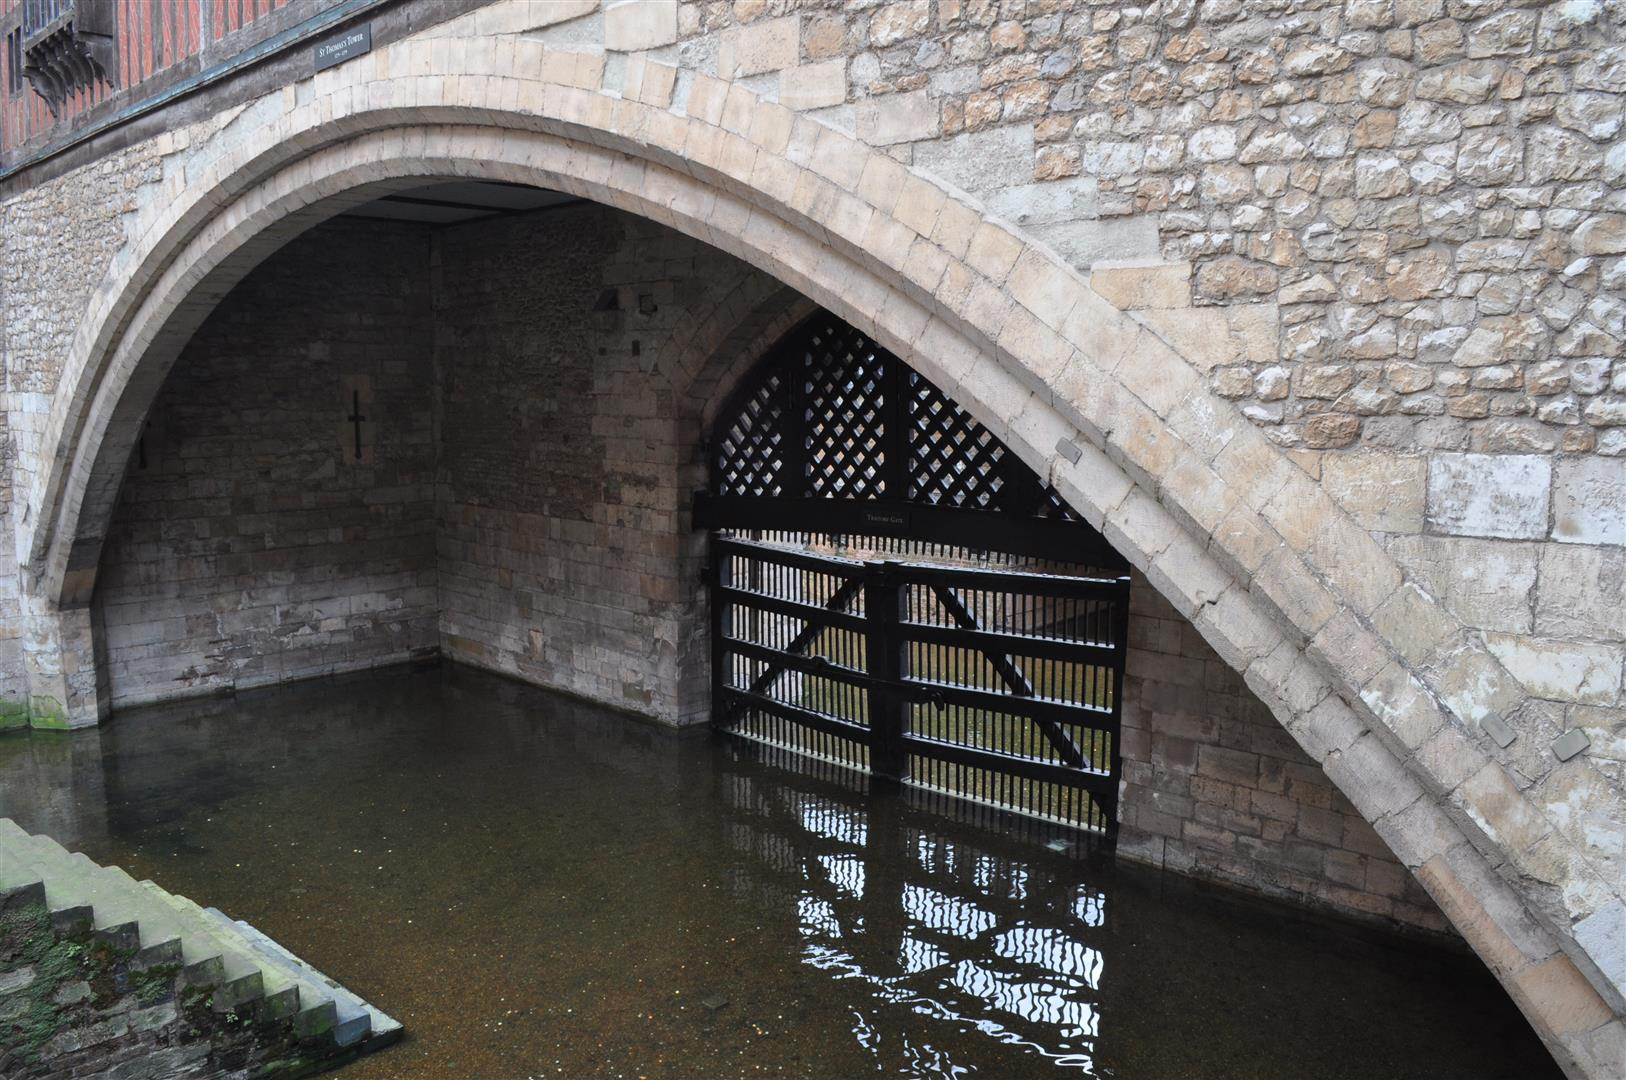 Traitor's Gate, Tower of London